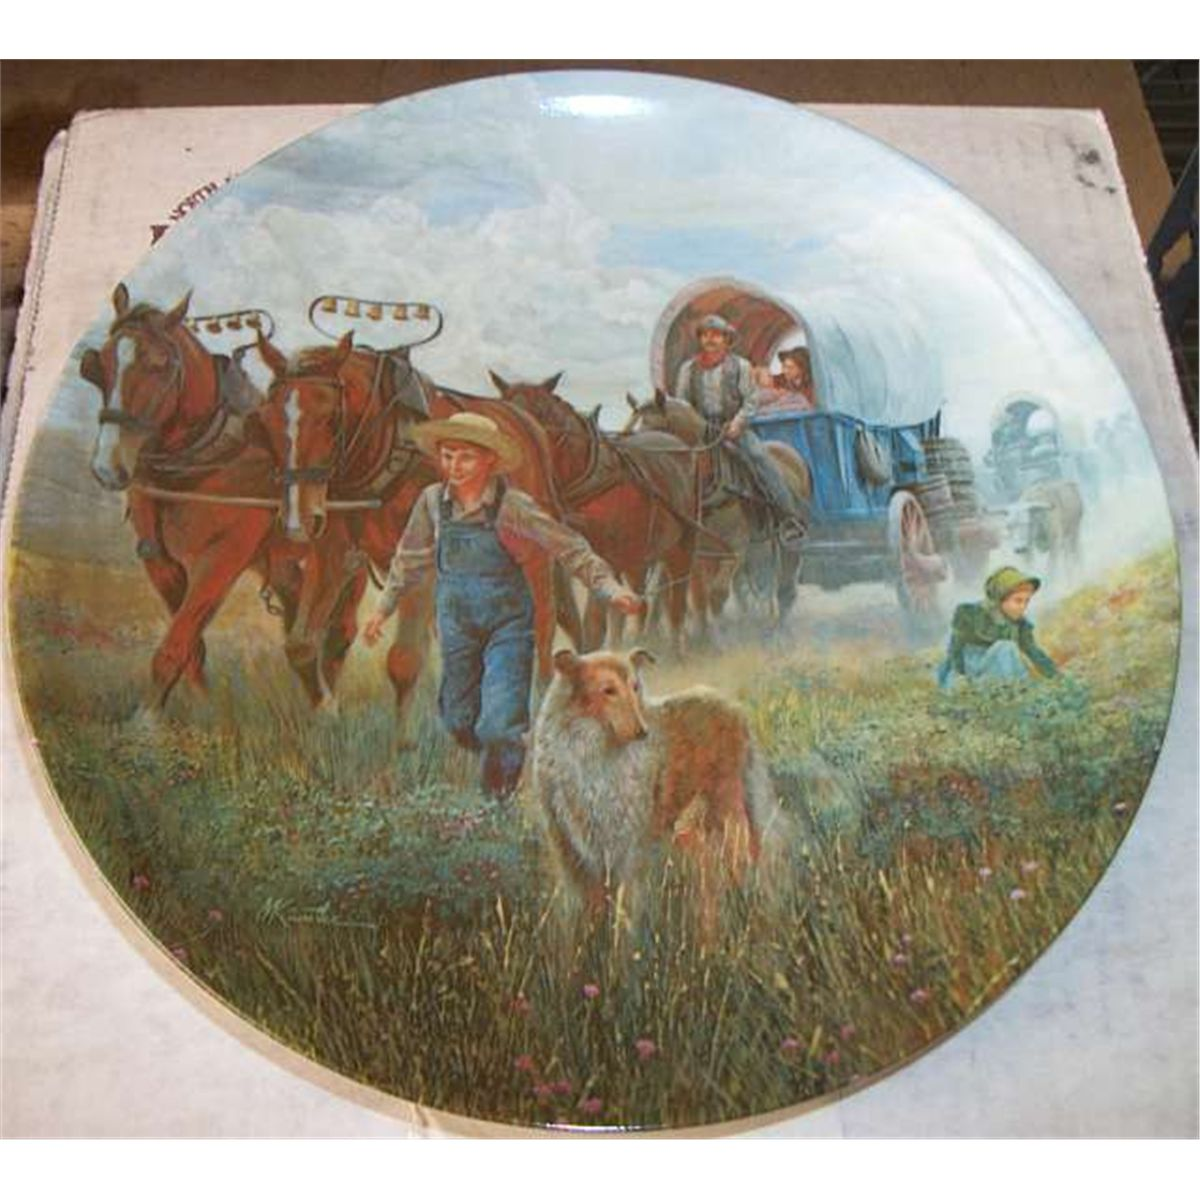 6 Country Collection Plates: Plate #1: \